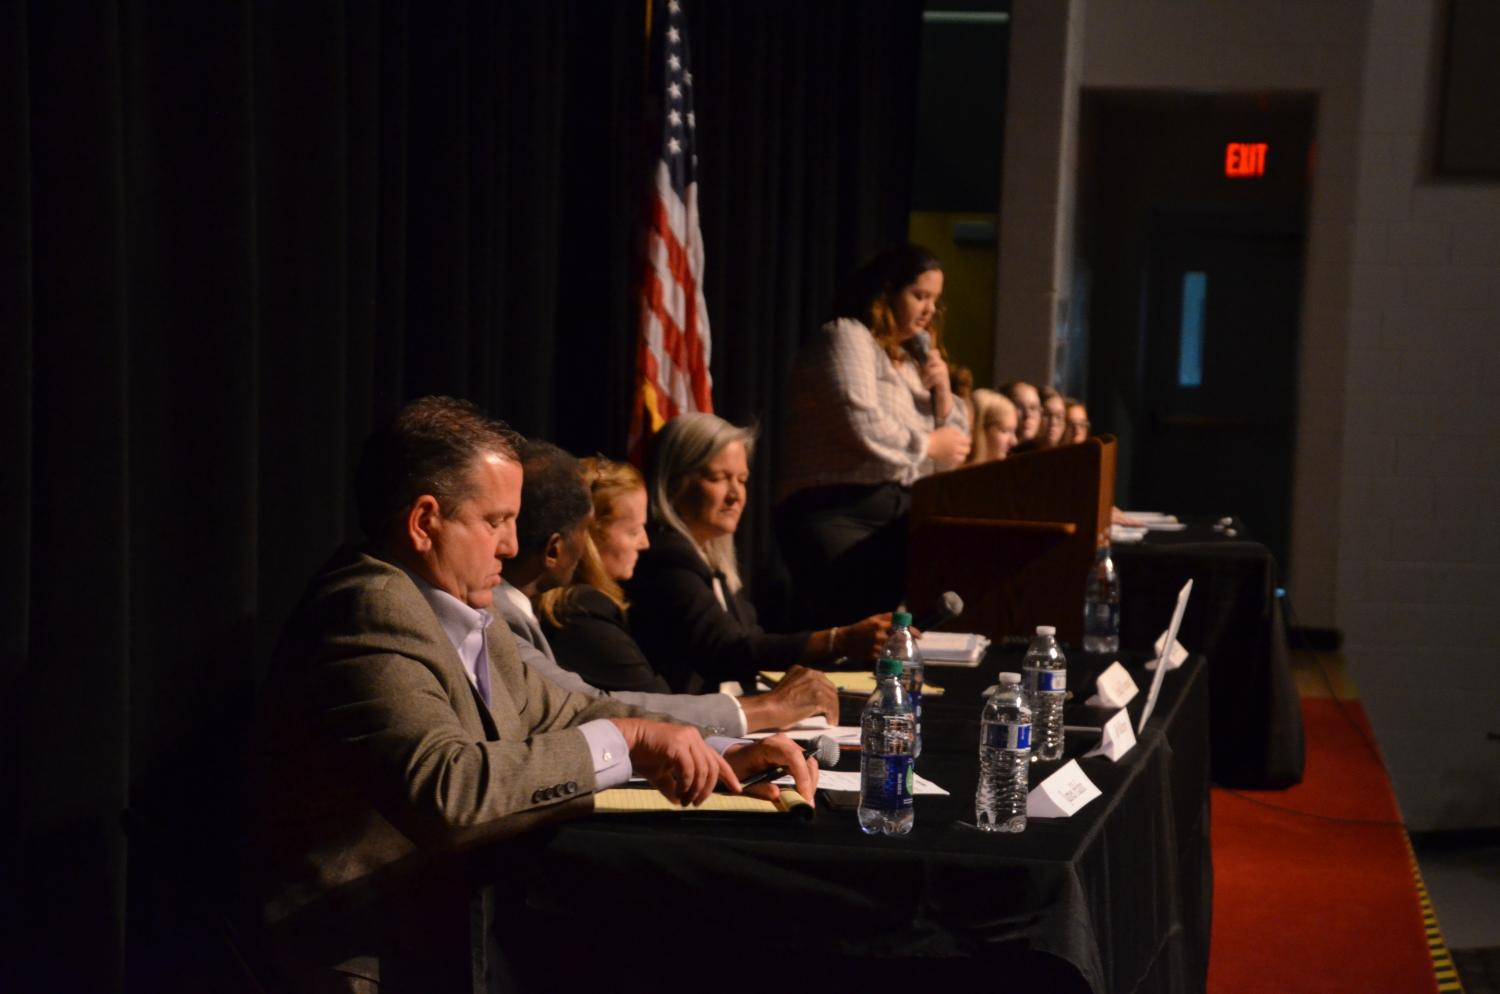 school board, lakota school board, lakota spark, lakota east, candidate night, dean hume, riley higgins, andrew marshall, anna mullins